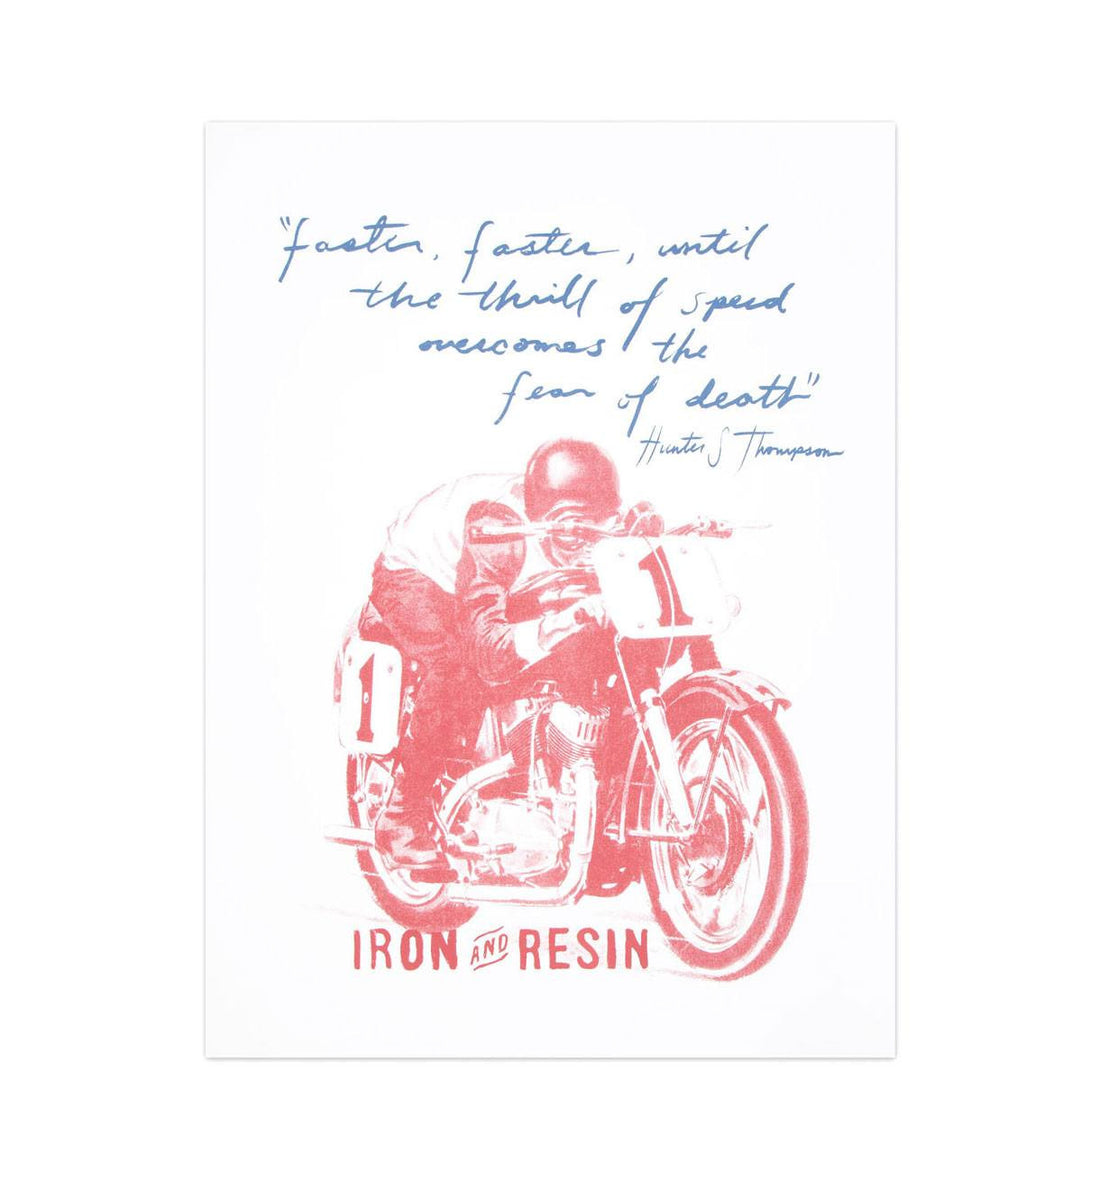 HUNTER S. THOMPSON POSTER - Accessories: Posters - Iron and Resin